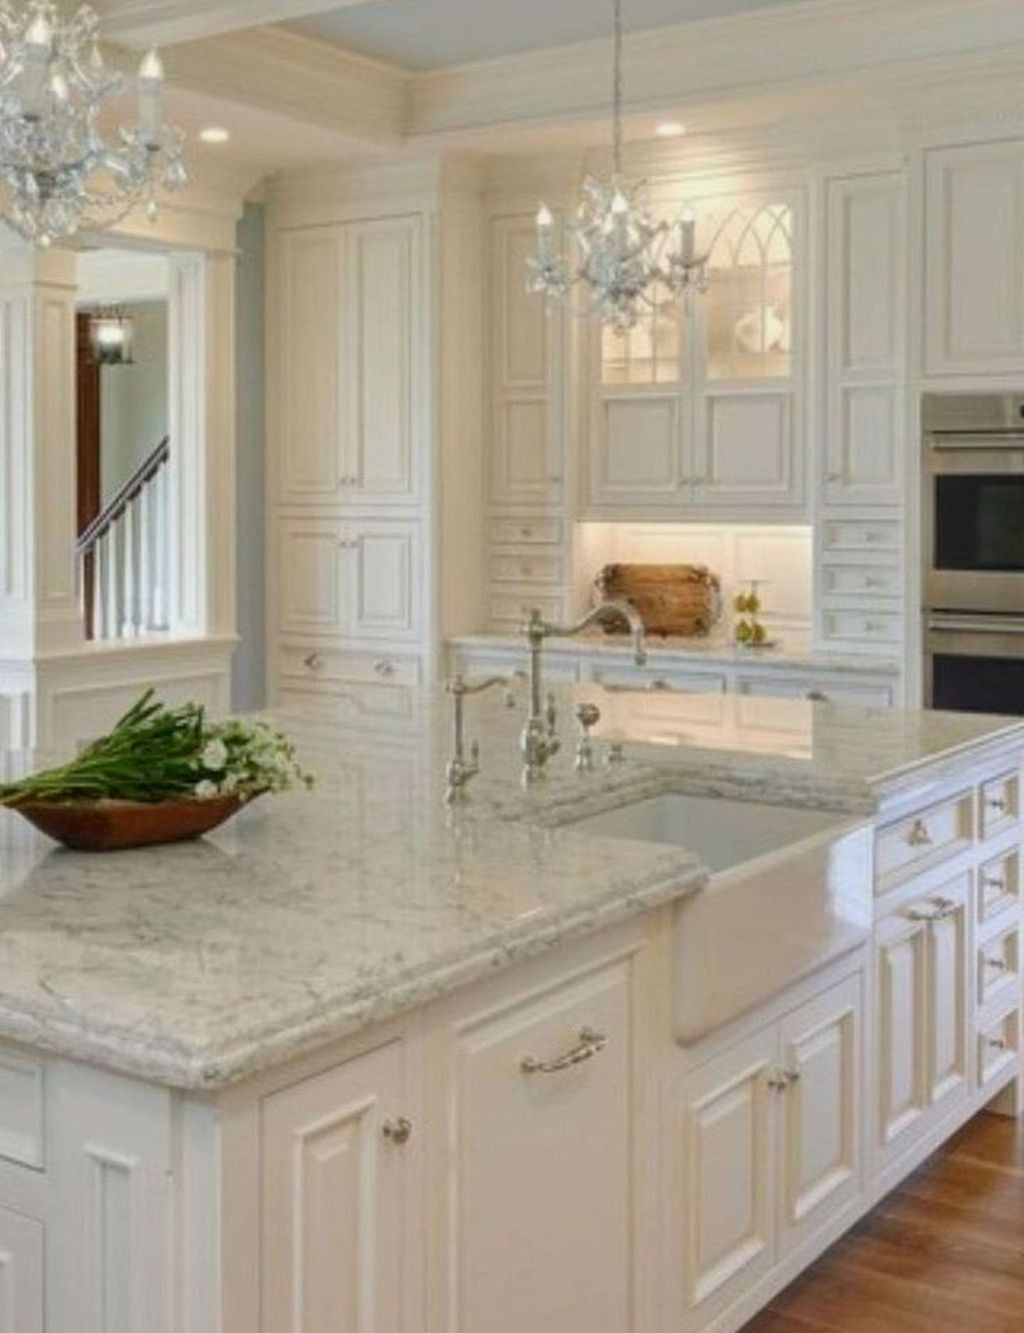 Popular Quotes And Sayings Antique White Kitchen Antique White Kitchen Cabinets Kitchen Cabinets Decor